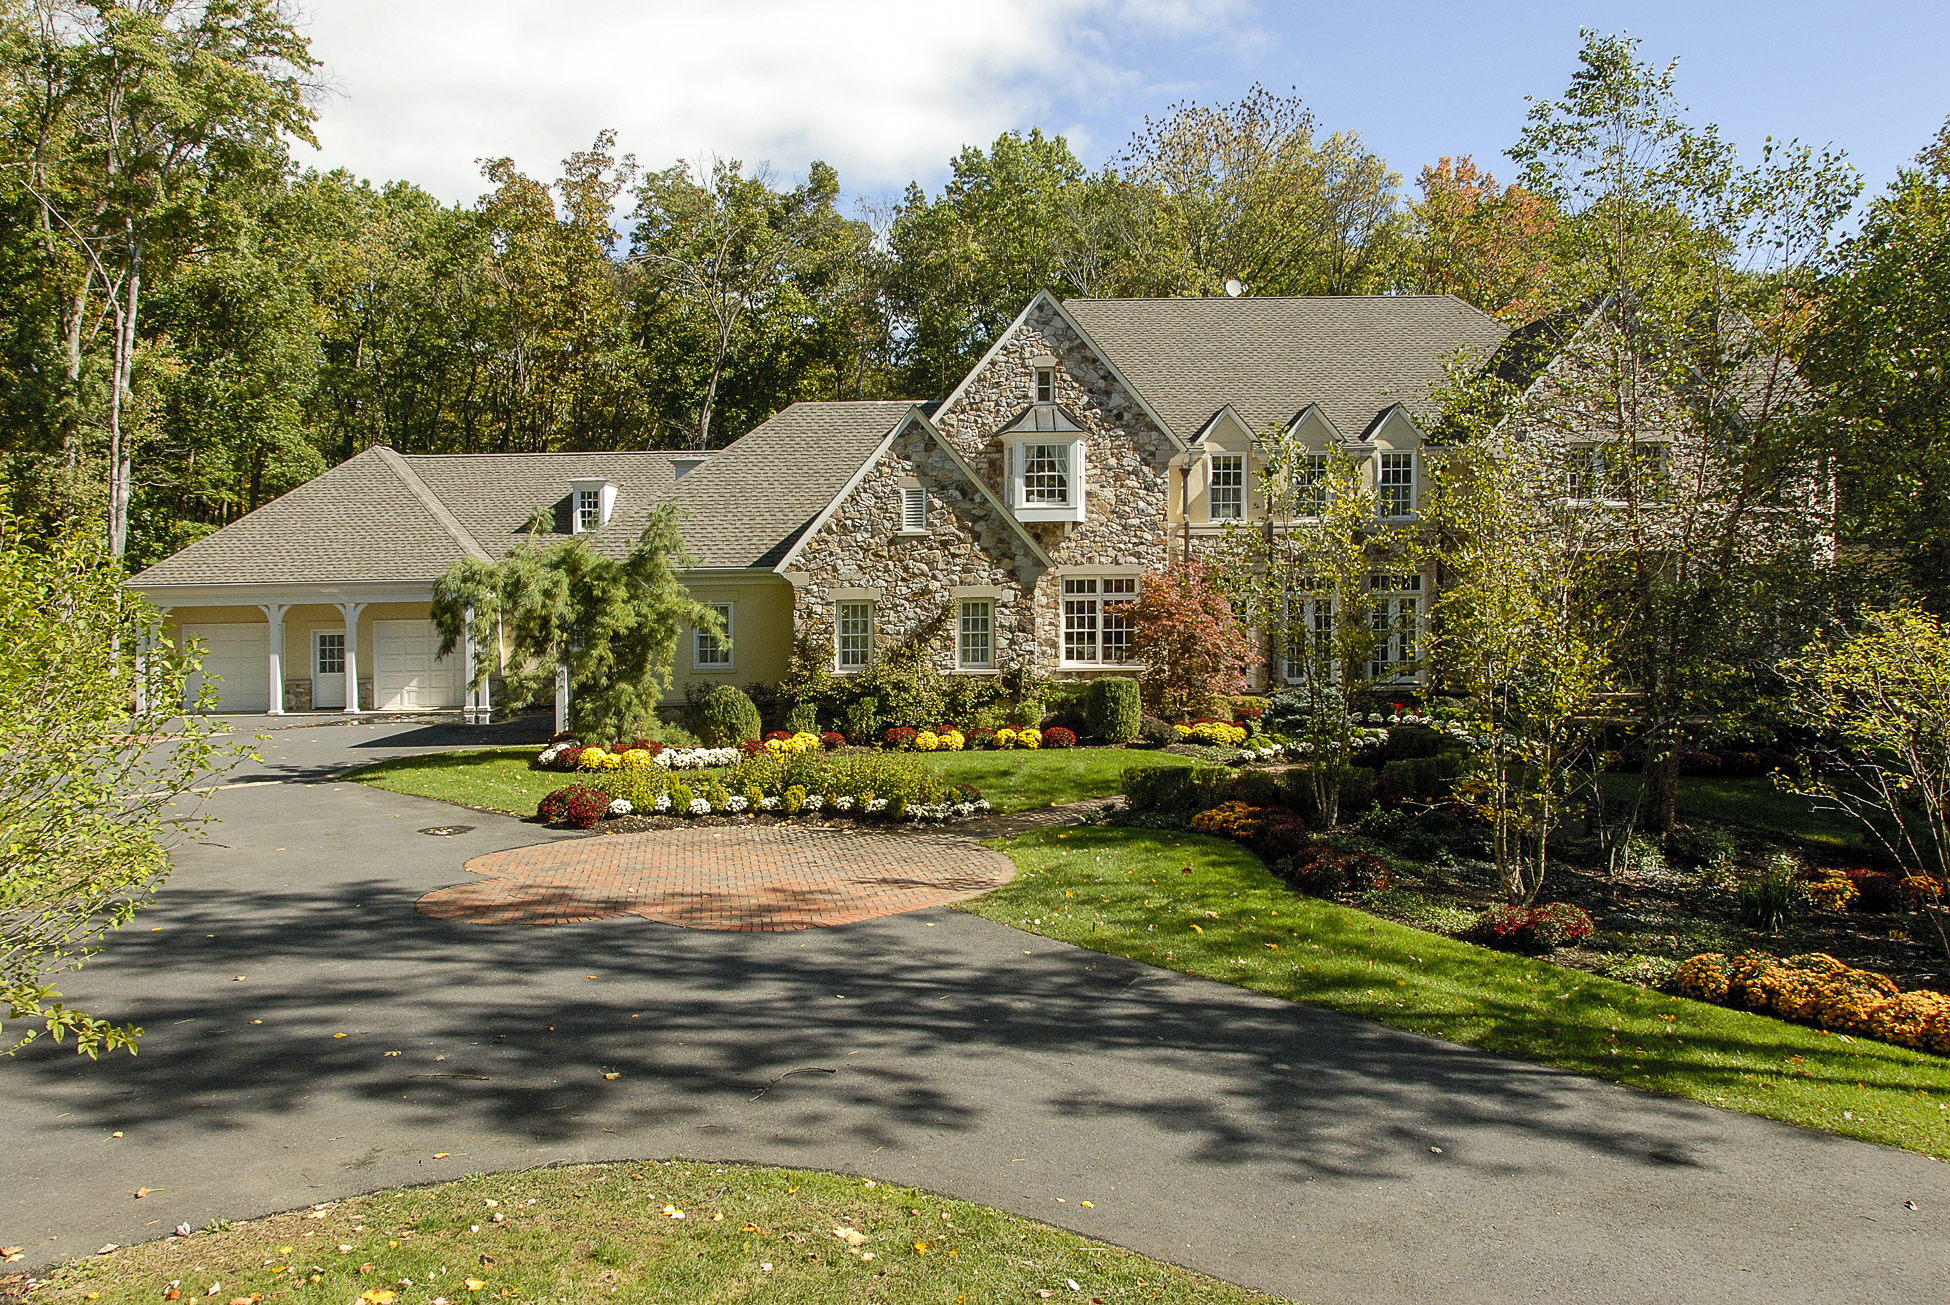 Частный односемейный дом для того Продажа на Magnificent Manor Home in Princeton's Coveted Rushbrook 27 Running Cedar Road Princeton, 08540 Соединенные Штаты